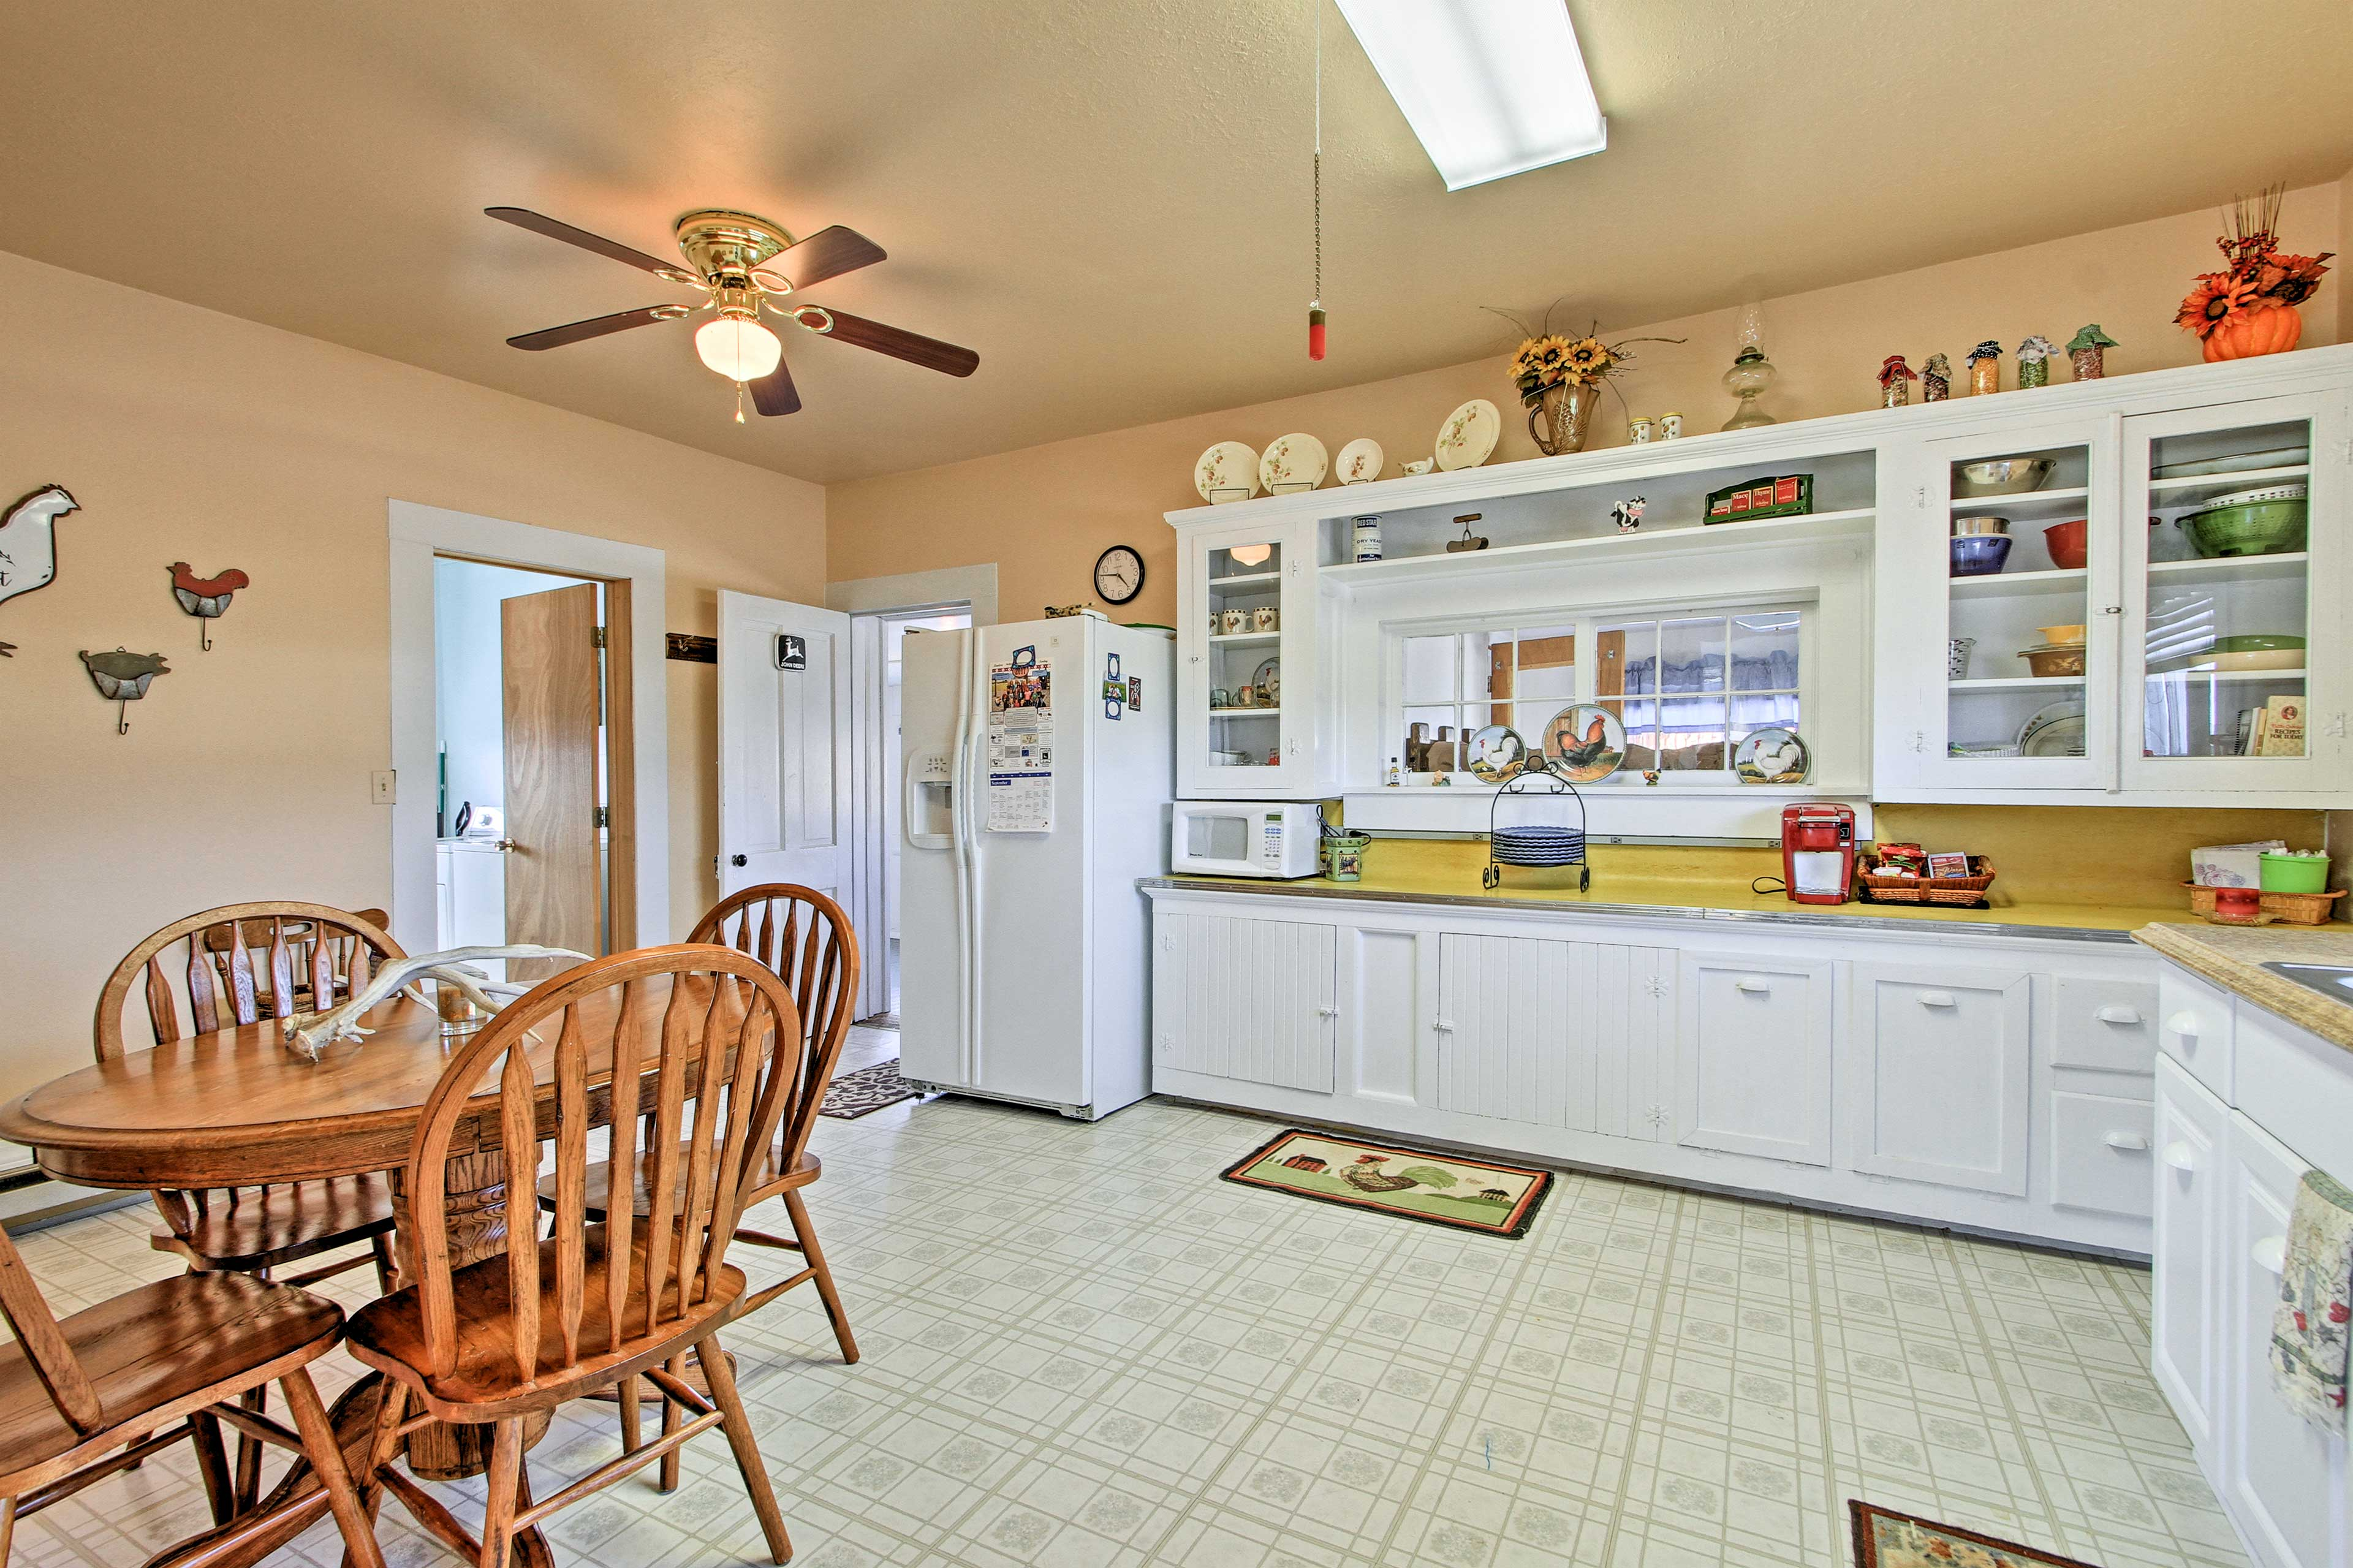 Enjoy a home-cooked meal at the 4-person dining table.